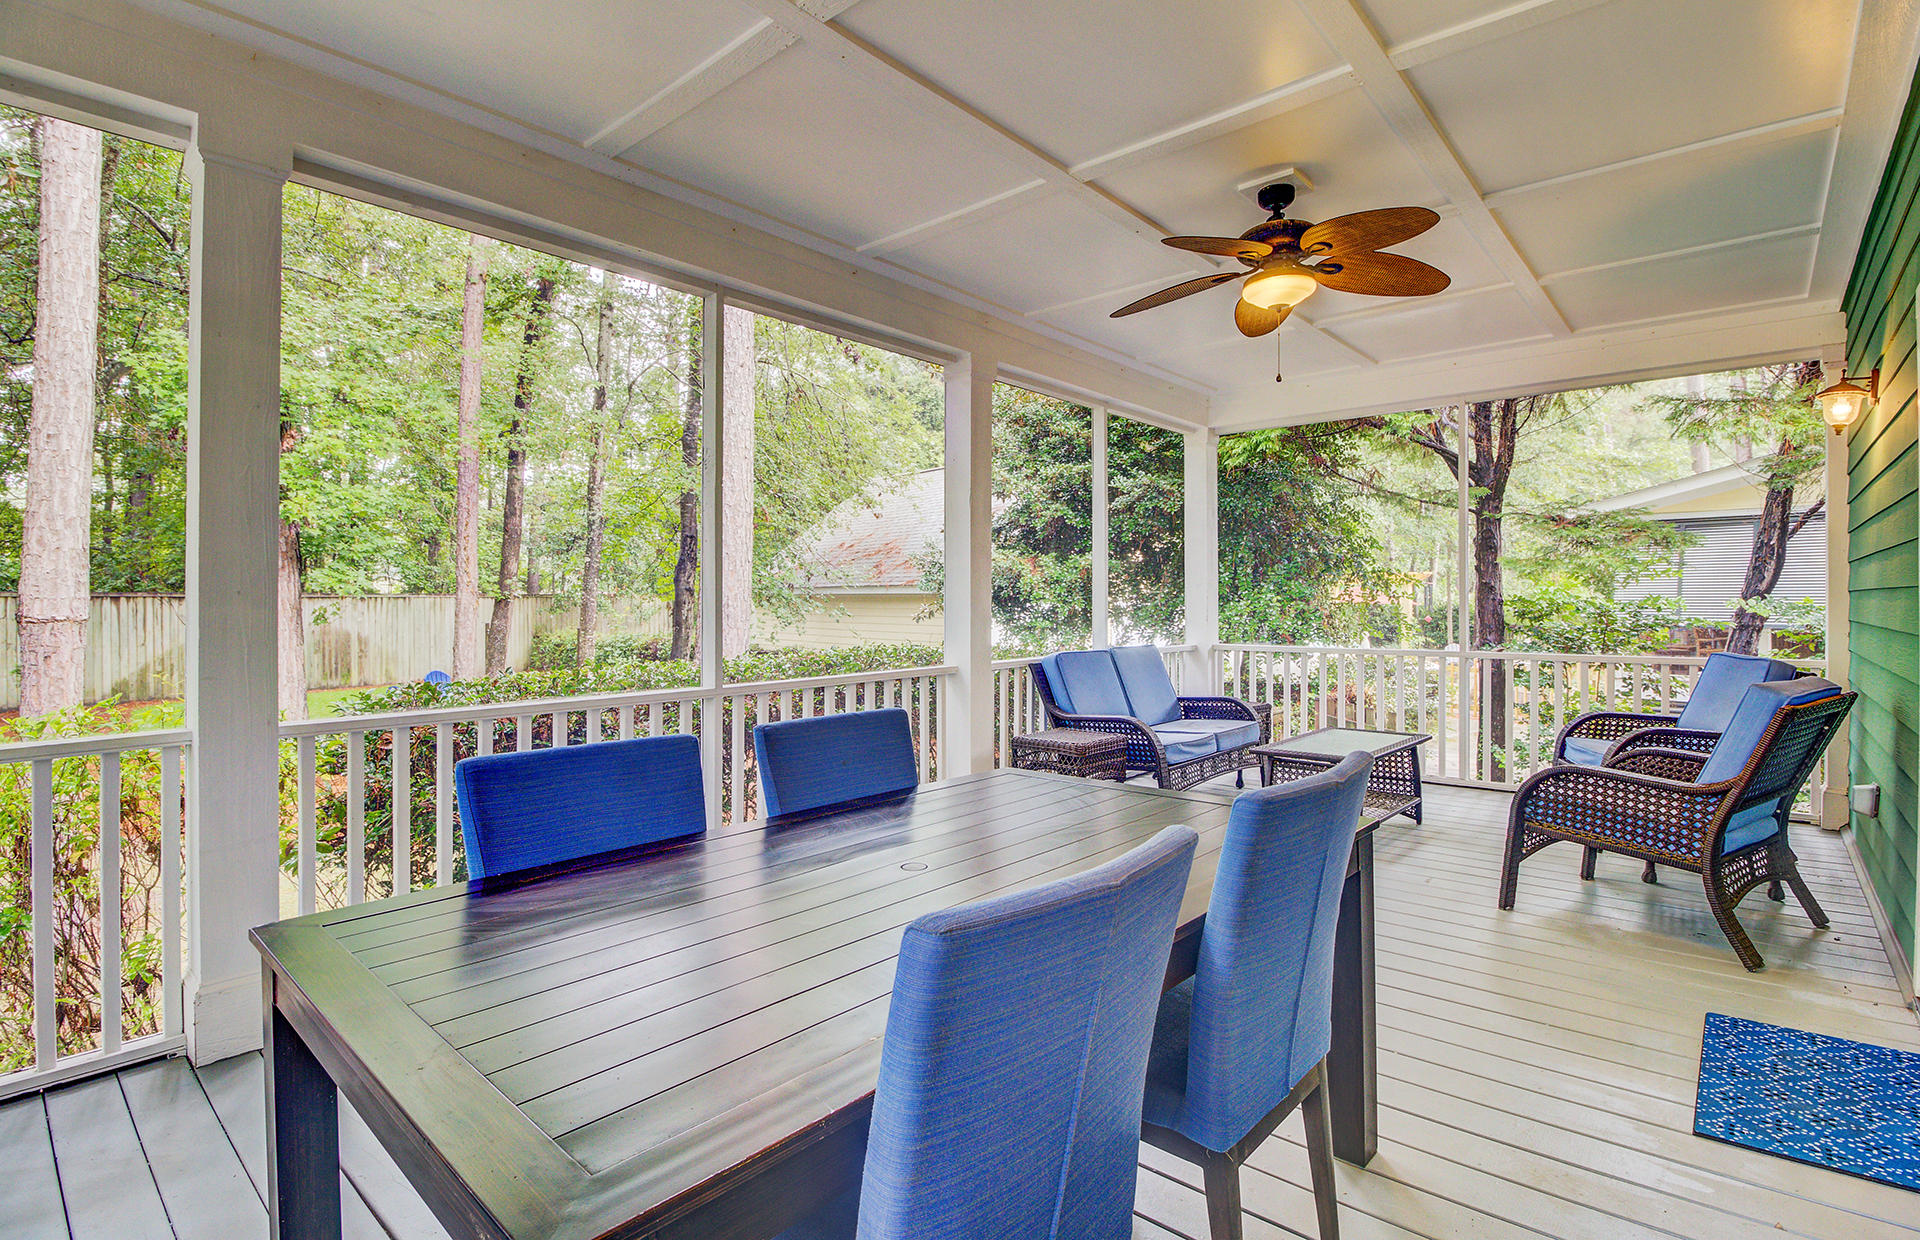 The Villages In St Johns Woods Homes For Sale - 5032 Coral Reef, Johns Island, SC - 52